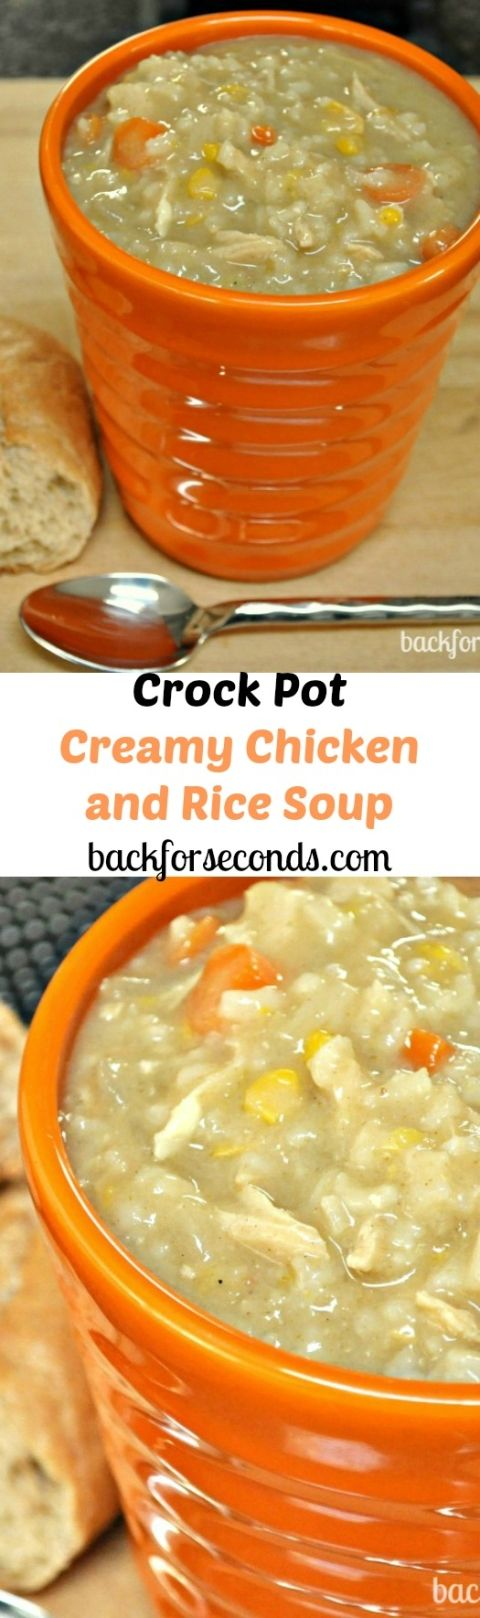 Creamy Chicken and Rice Soup Recipe made in the Crock Pot will need to use gluten free flour and coconut milk to make gluten/dairy free